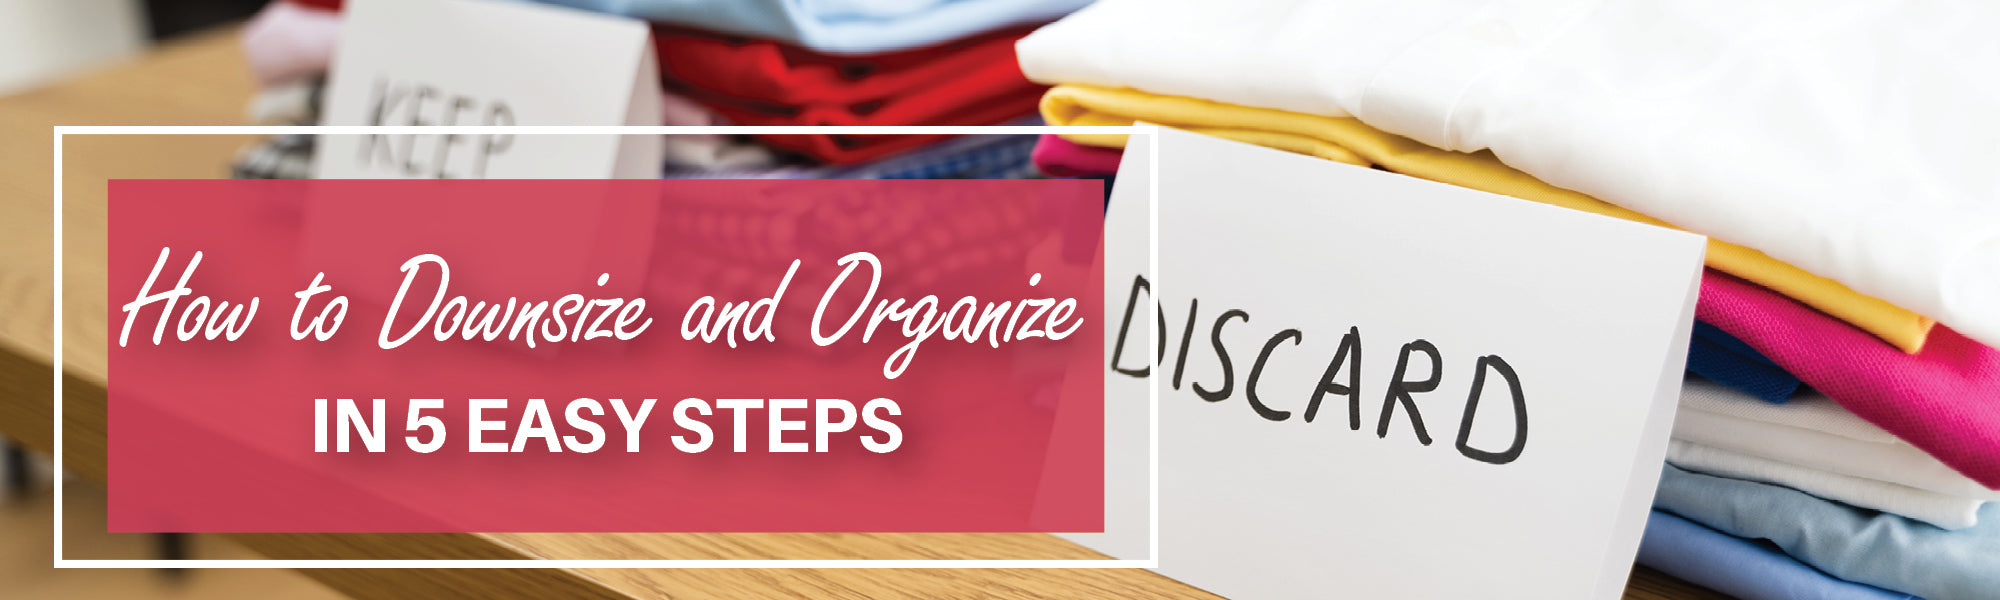 How to Downsize and Organize in 5 Easy Steps